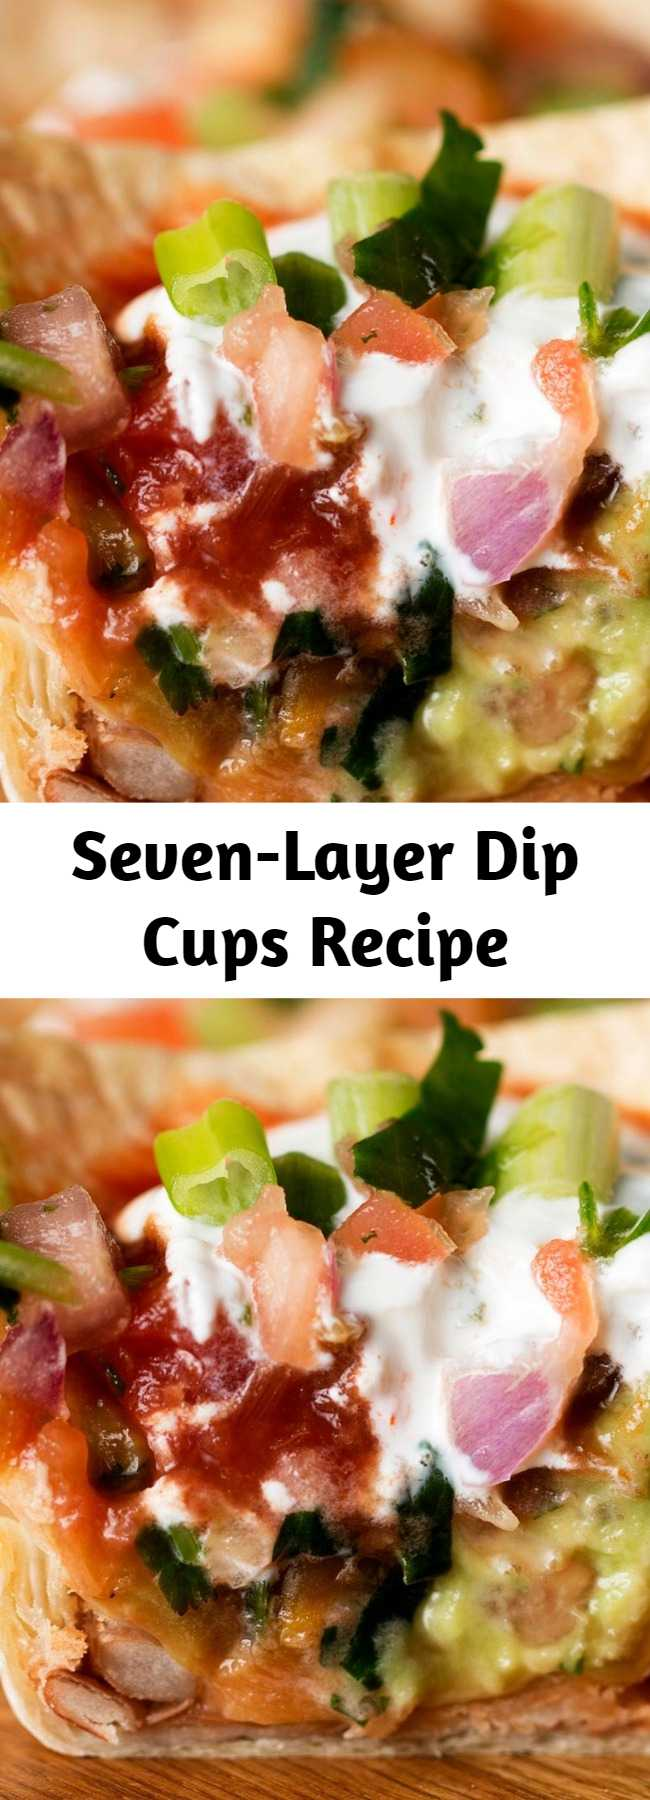 Seven-Layer Dip Cups Recipe - These recipe is amazing!!! The whole family loves them. Really fast, easy, and tasty snacks.